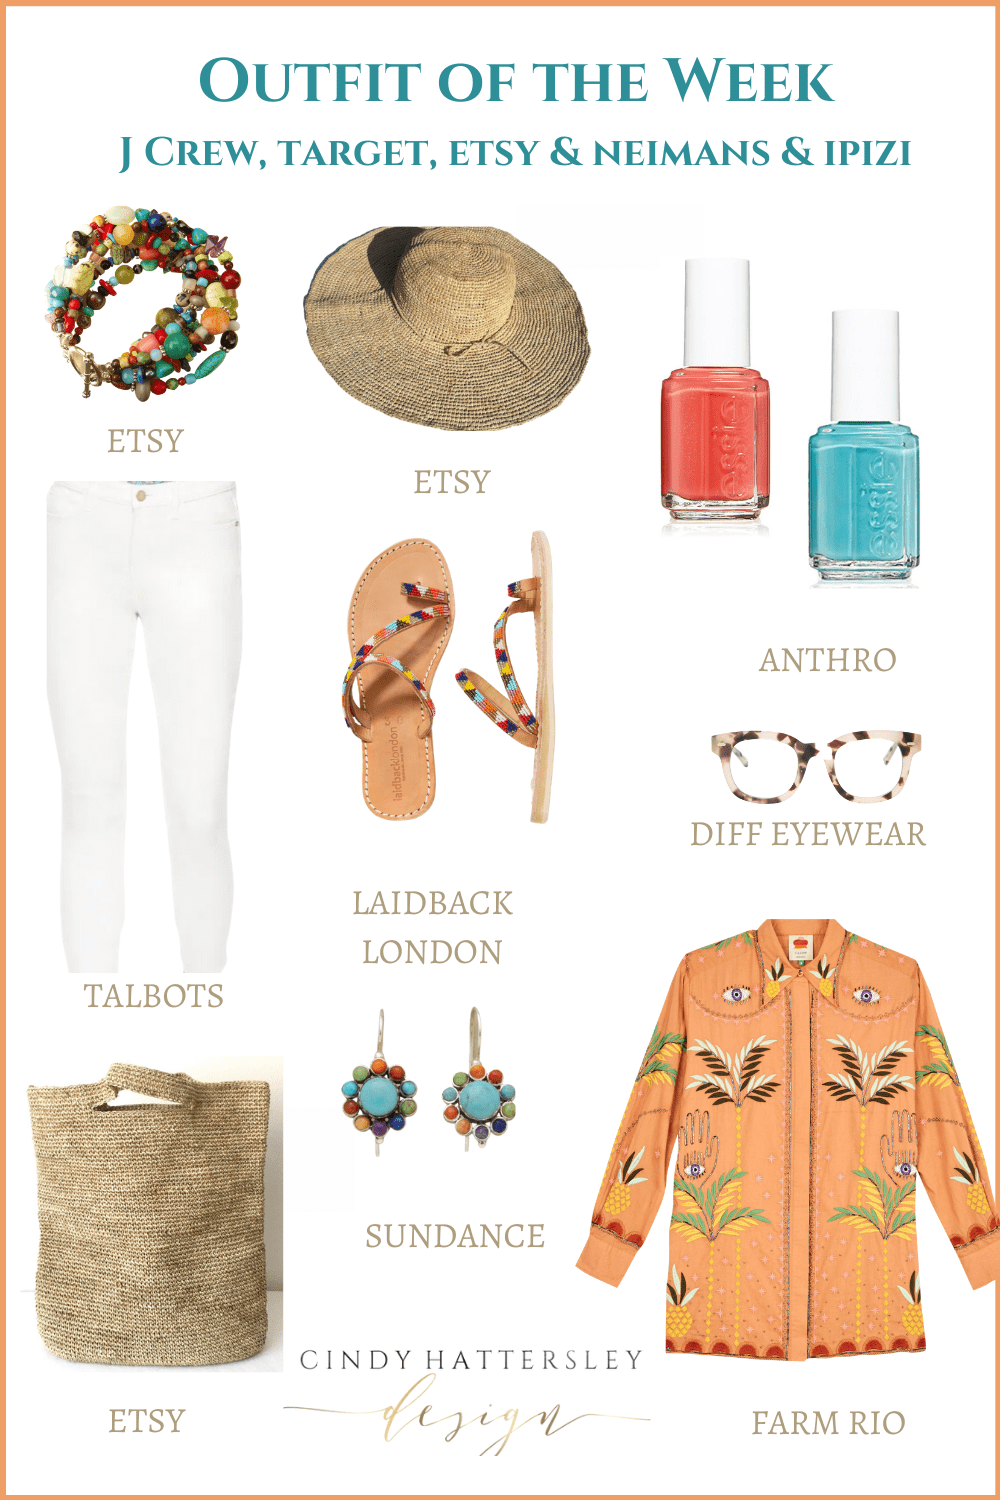 FARM RIO OUTFIT OF THE WEEK